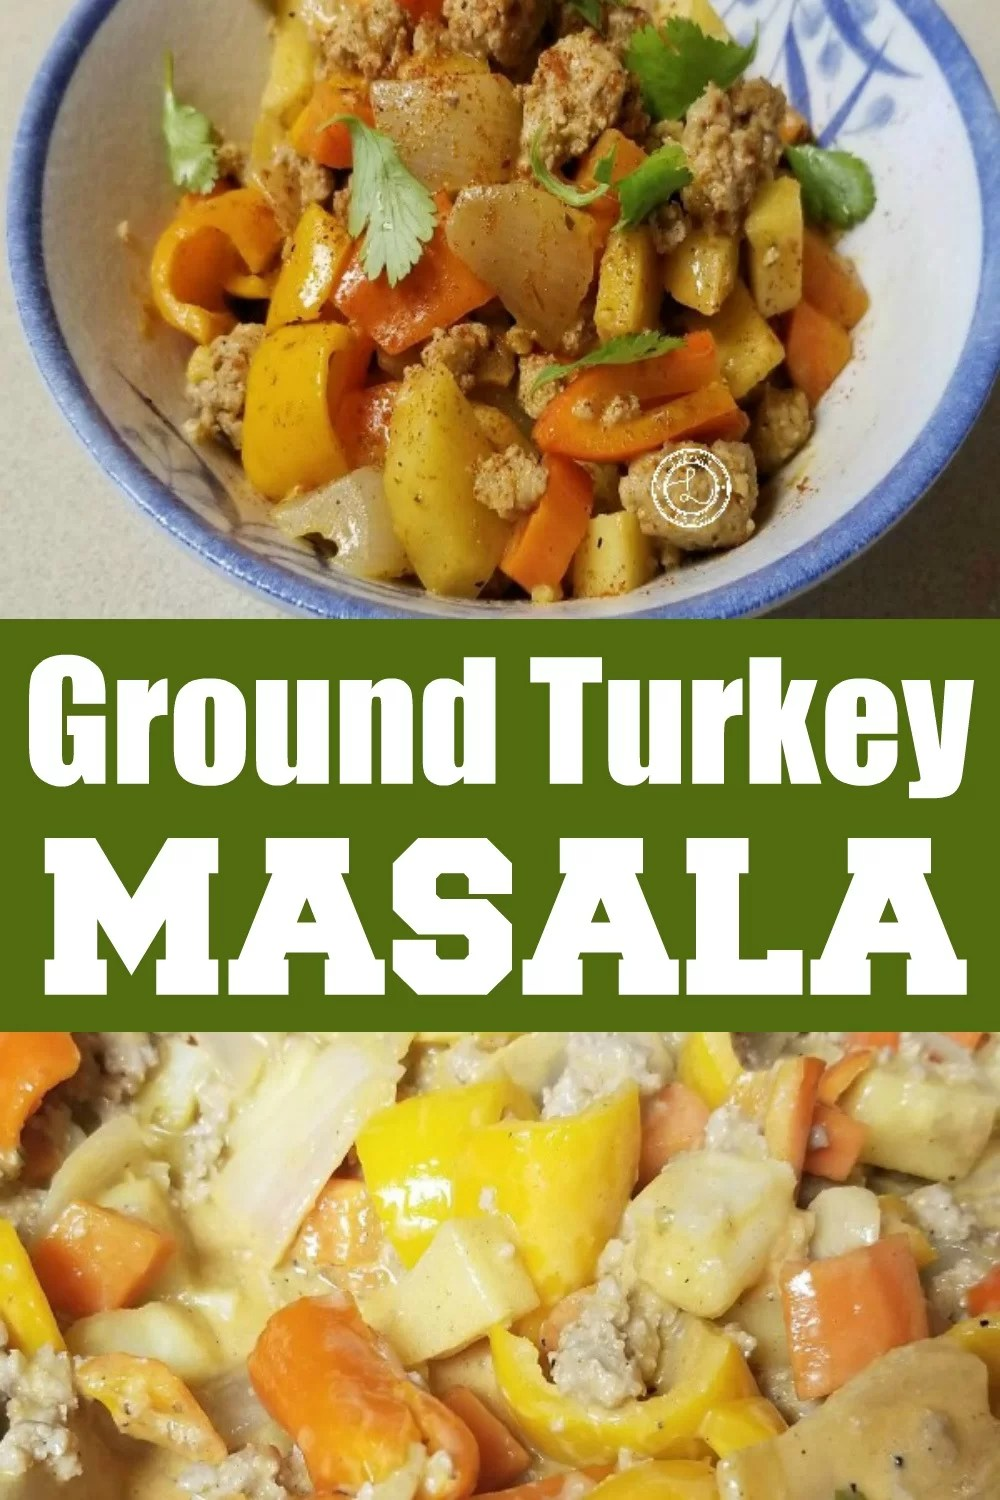 Turkey Masala in the pot and in a bowl decoated with parsley